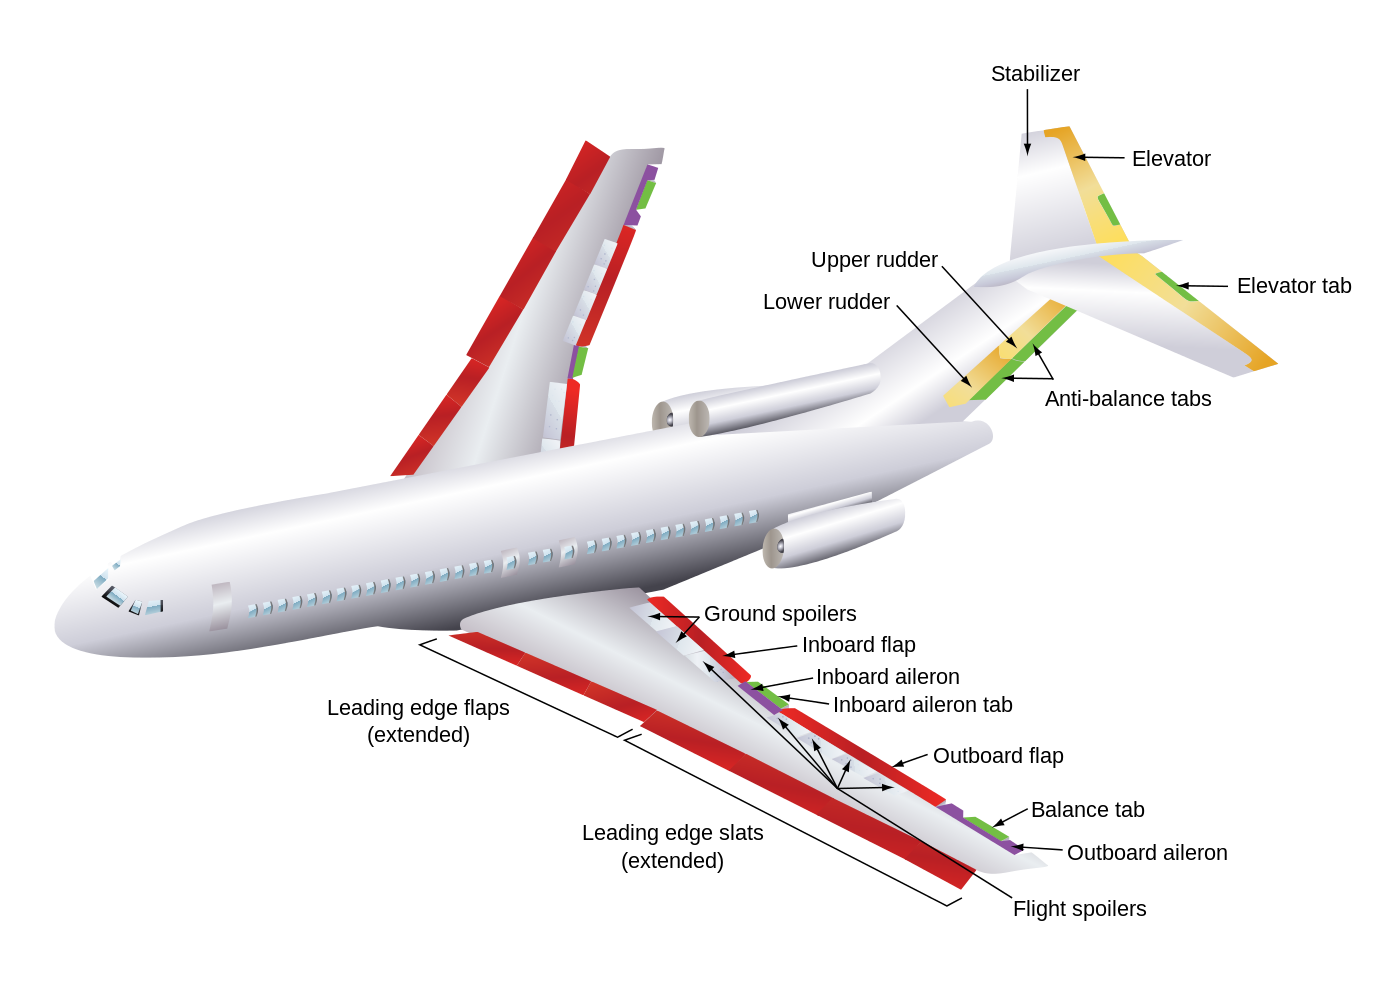 Clipart Airplane Turbulence  Clipart Airplane Turbulence Transparent Free For Download On